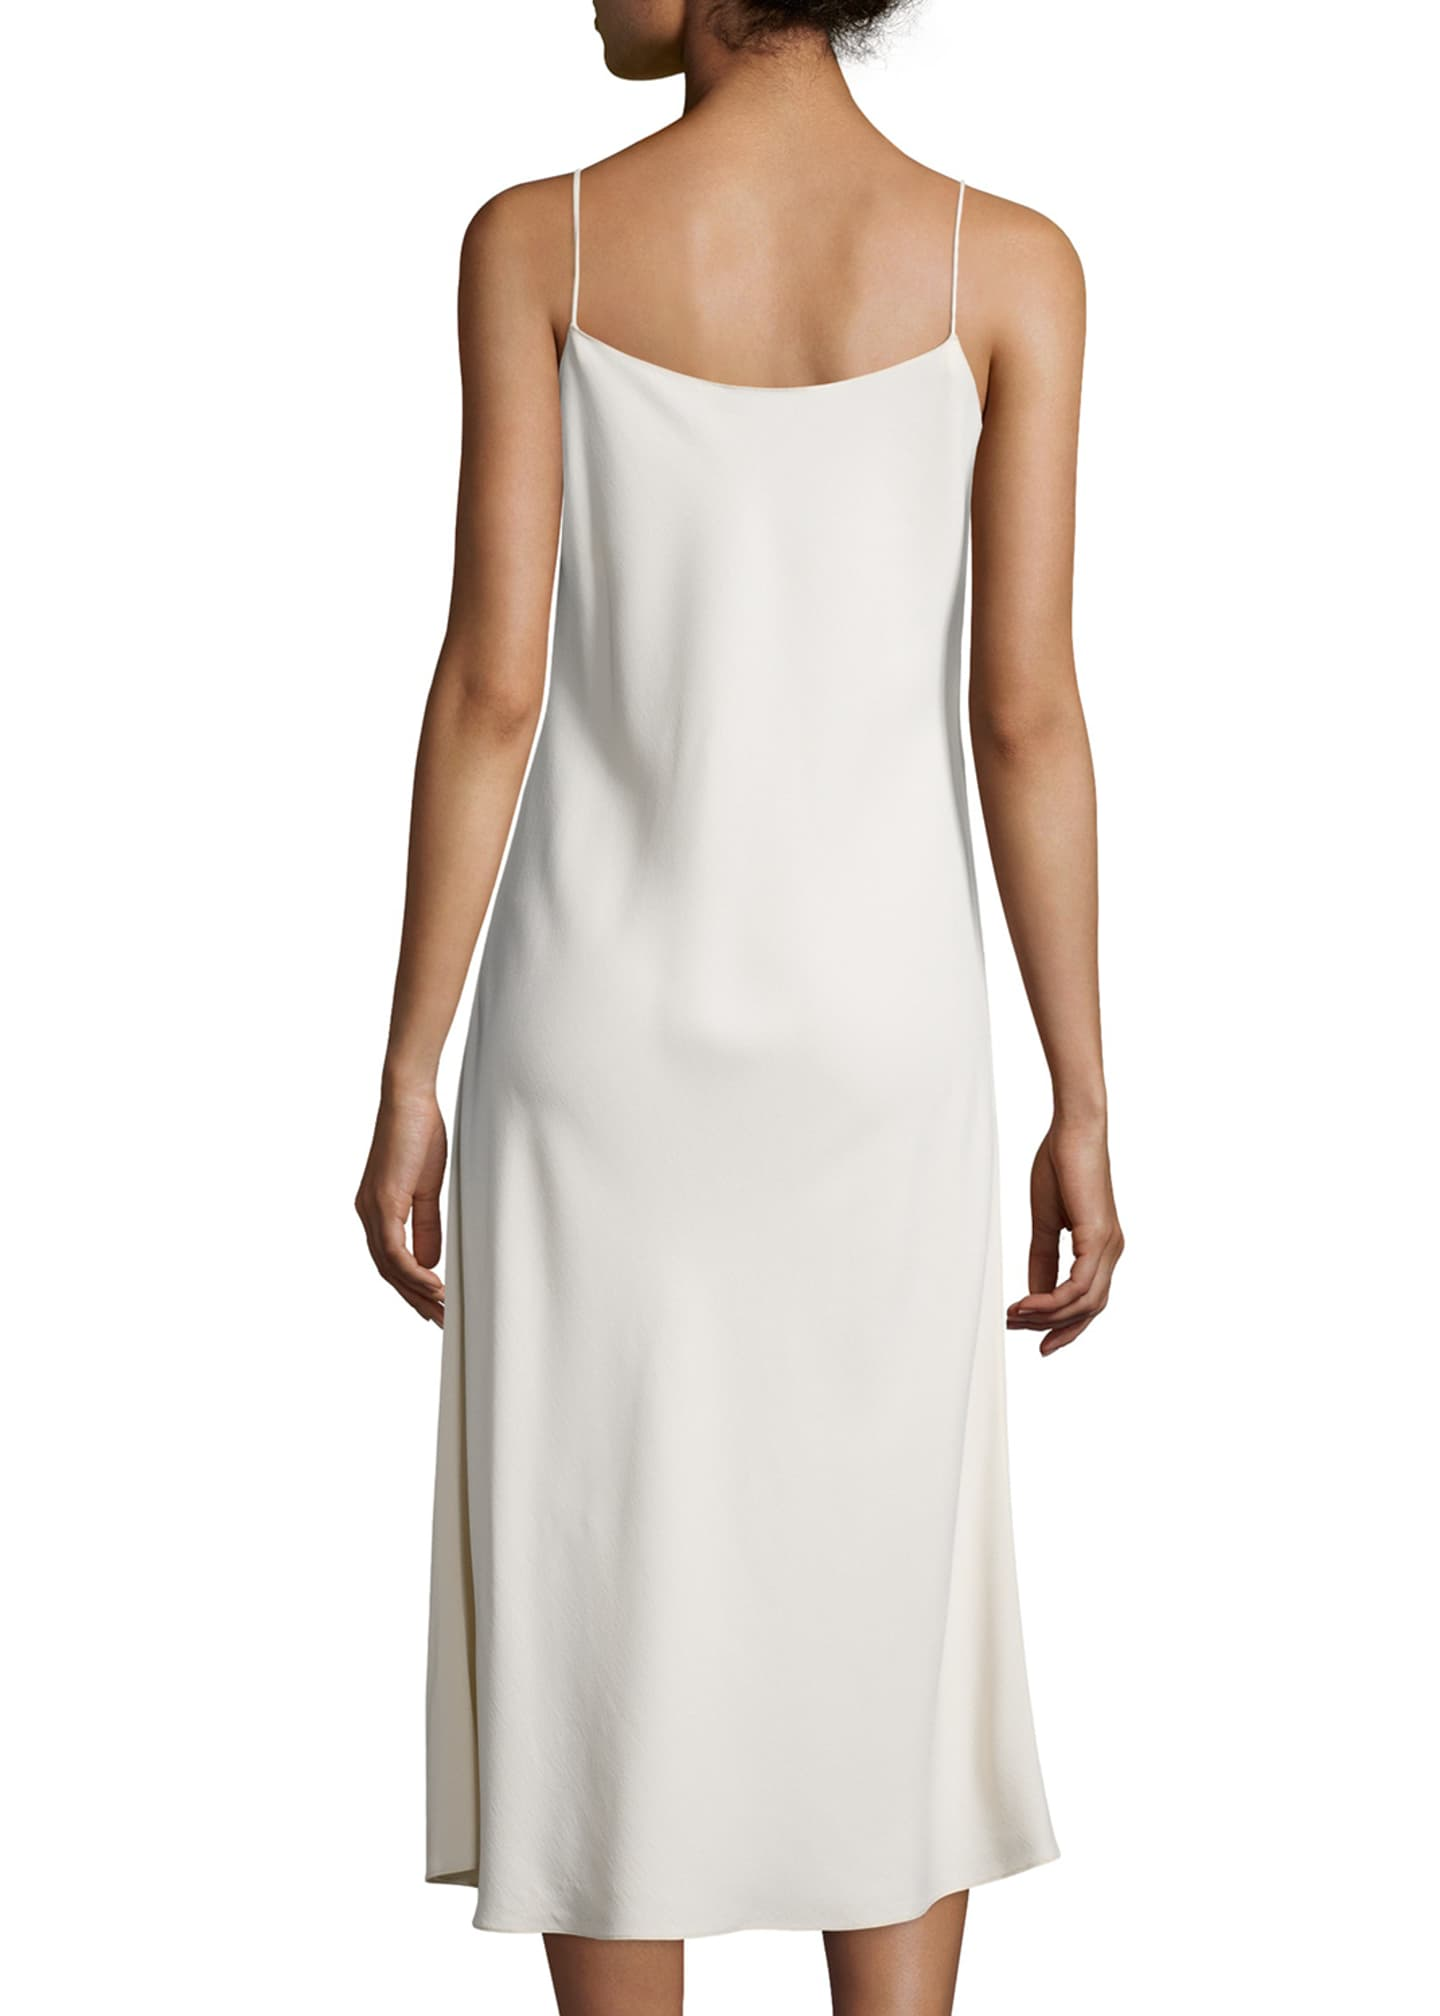 Image 2 of 2: Gibbons Sleeveless Bias-Cut Dress